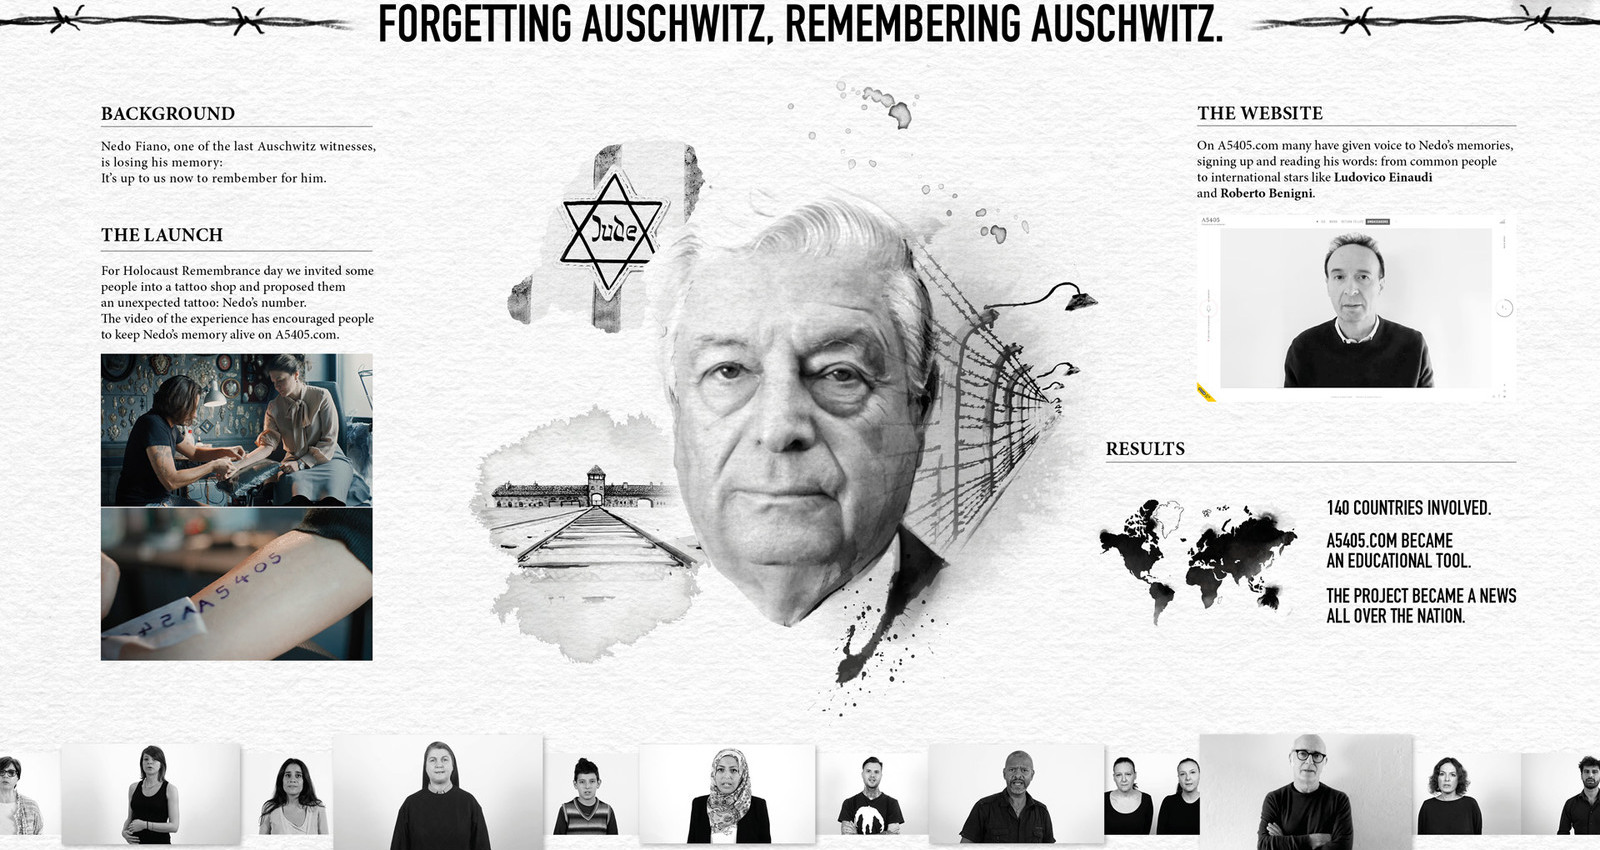 Forgetting Auschwitz, Remembering Auschwitz